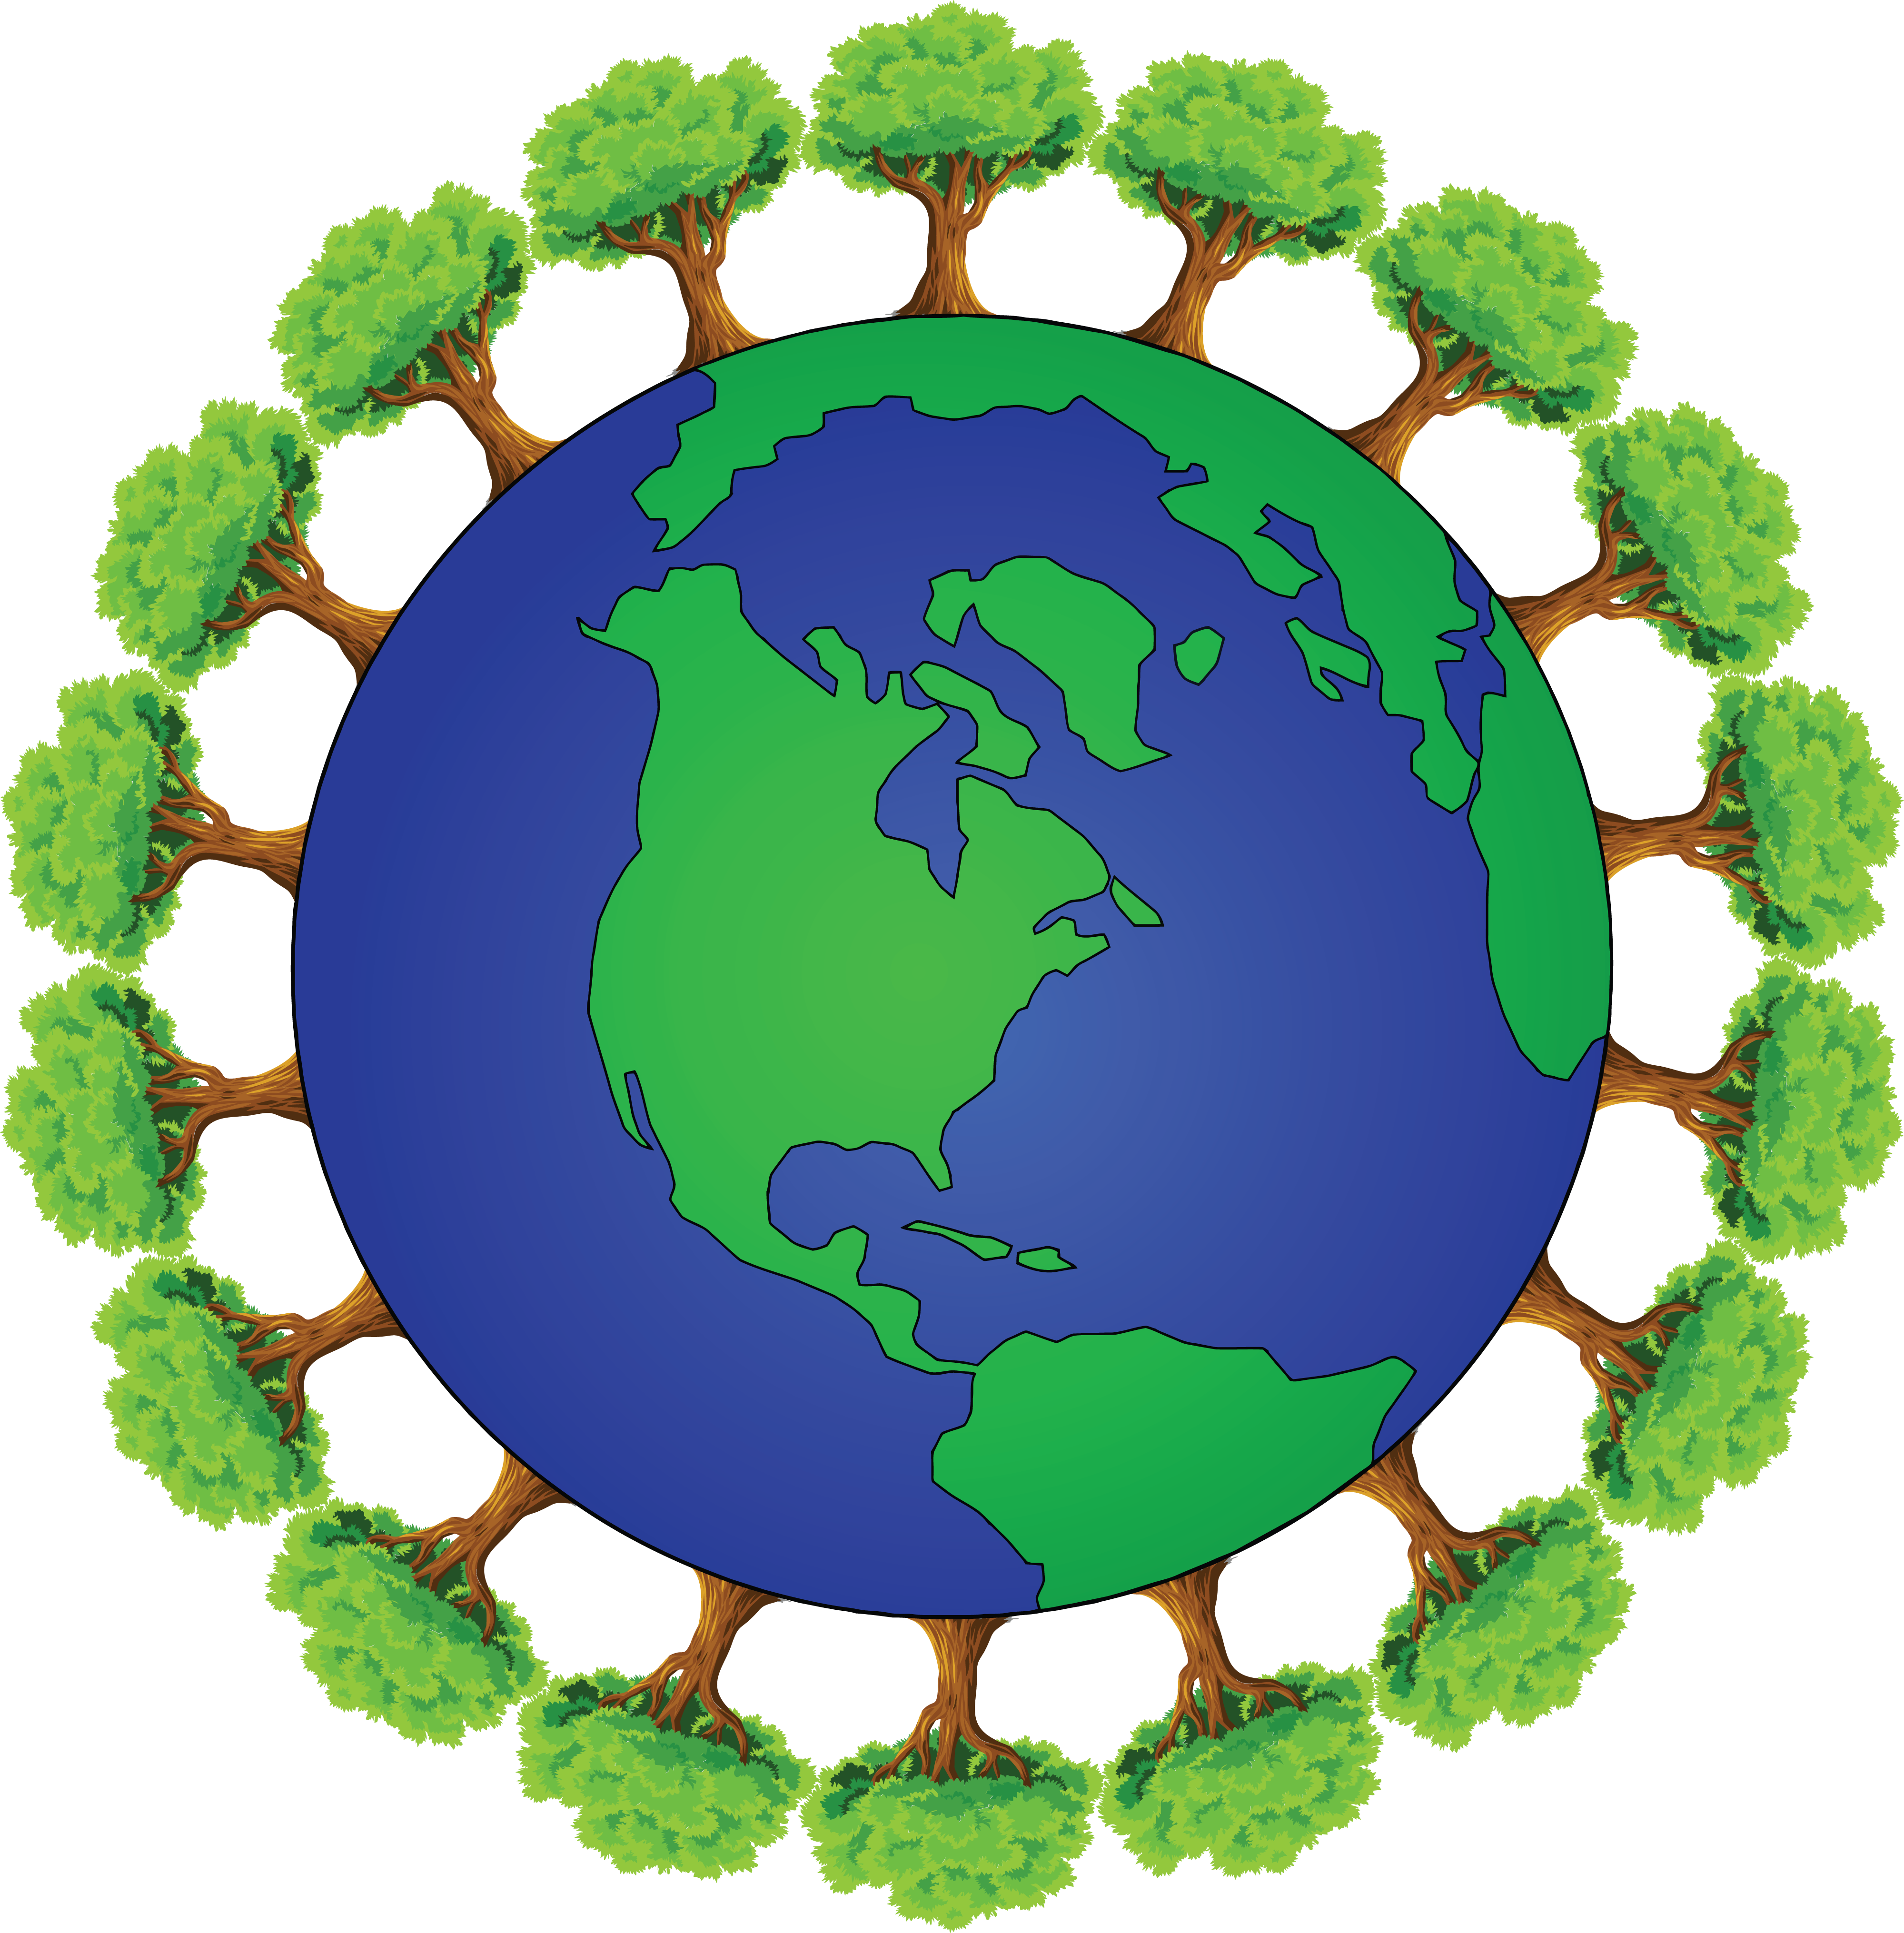 free clipart of planet earth encircled with trees rh free clipartof com planet earth in space clipart planet earth black and white clipart